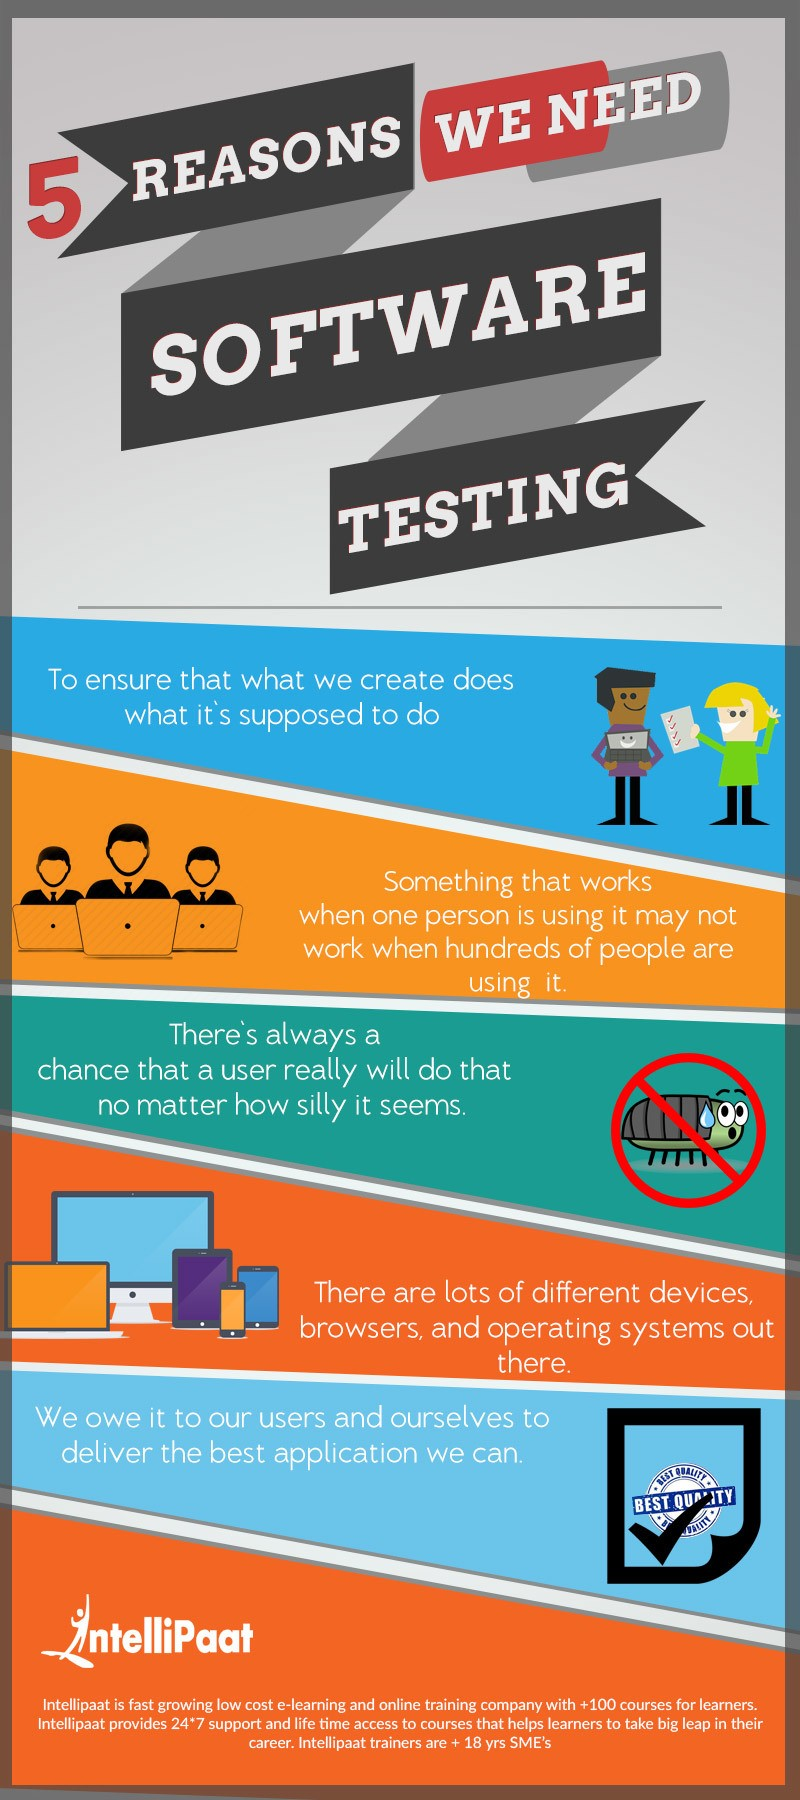 why we need software testing